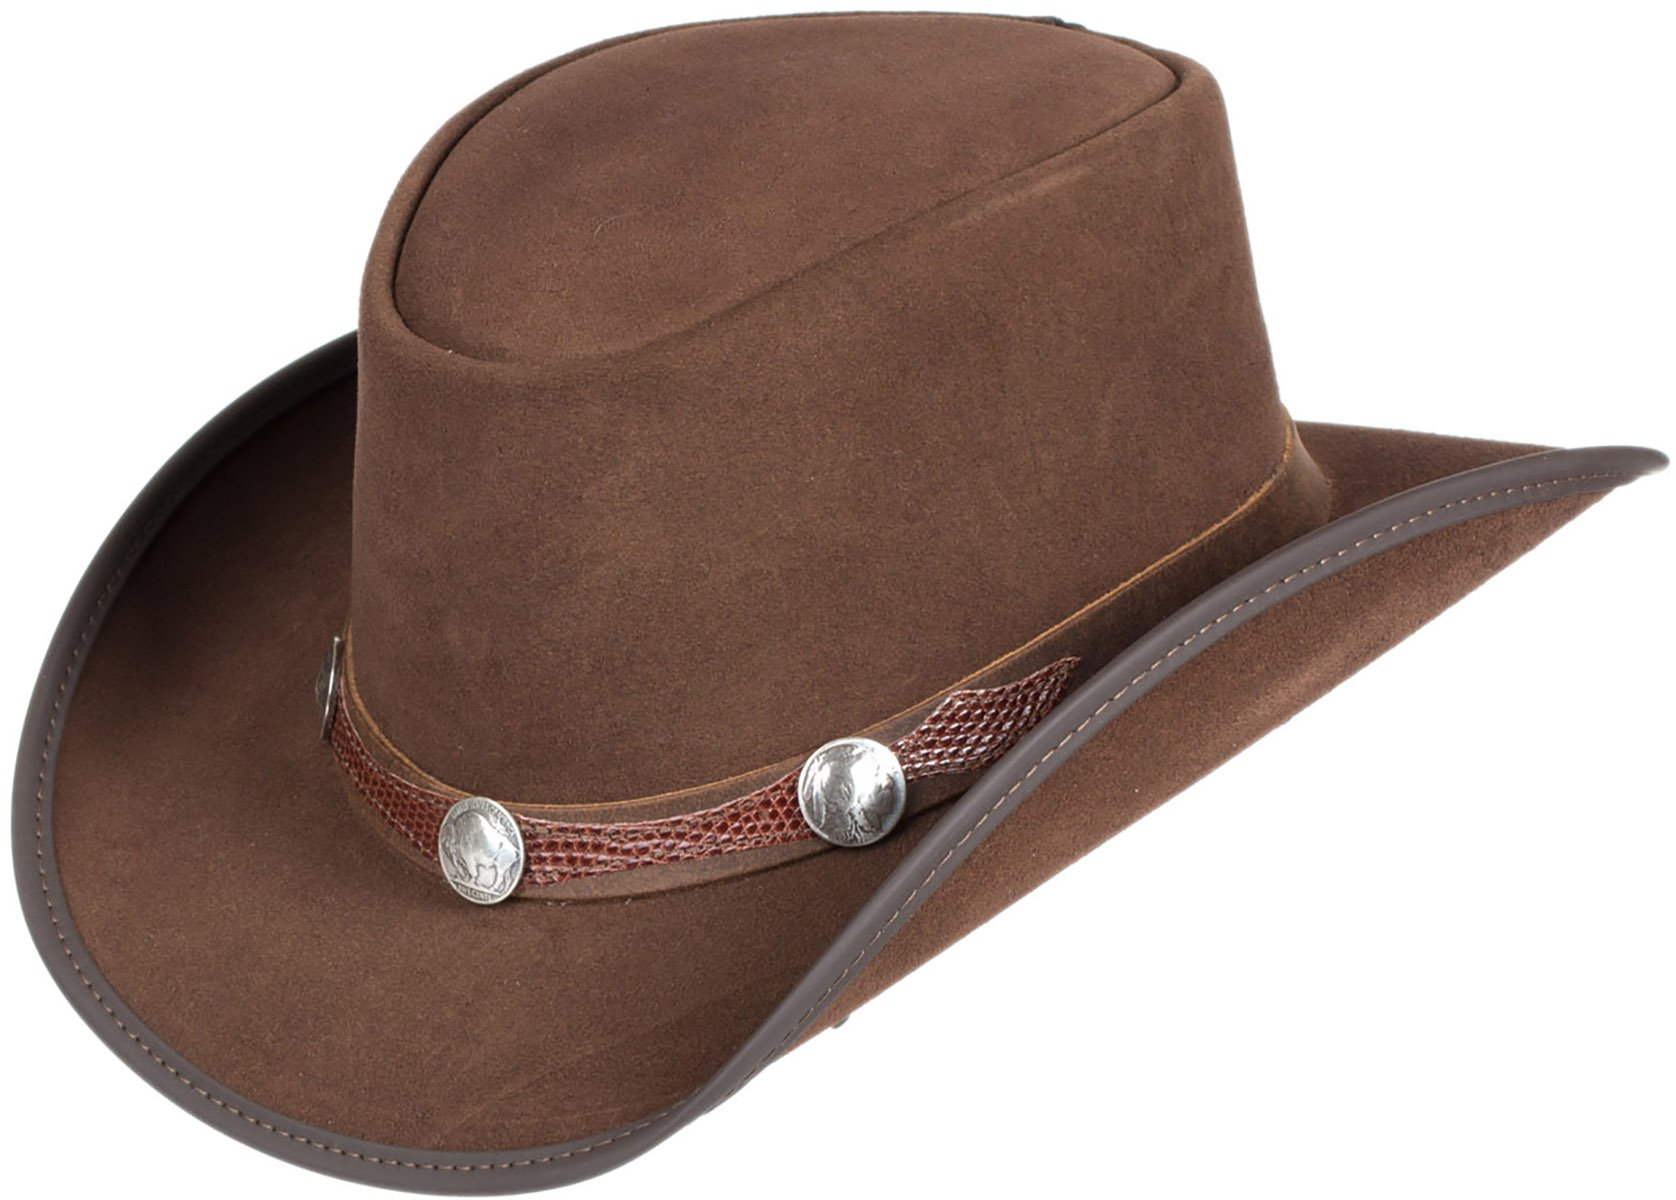 Overland Sheepskin Co plainsman Suede Leather Cowboy Hat With Buffalo nickels by Overland Sheepskin Co